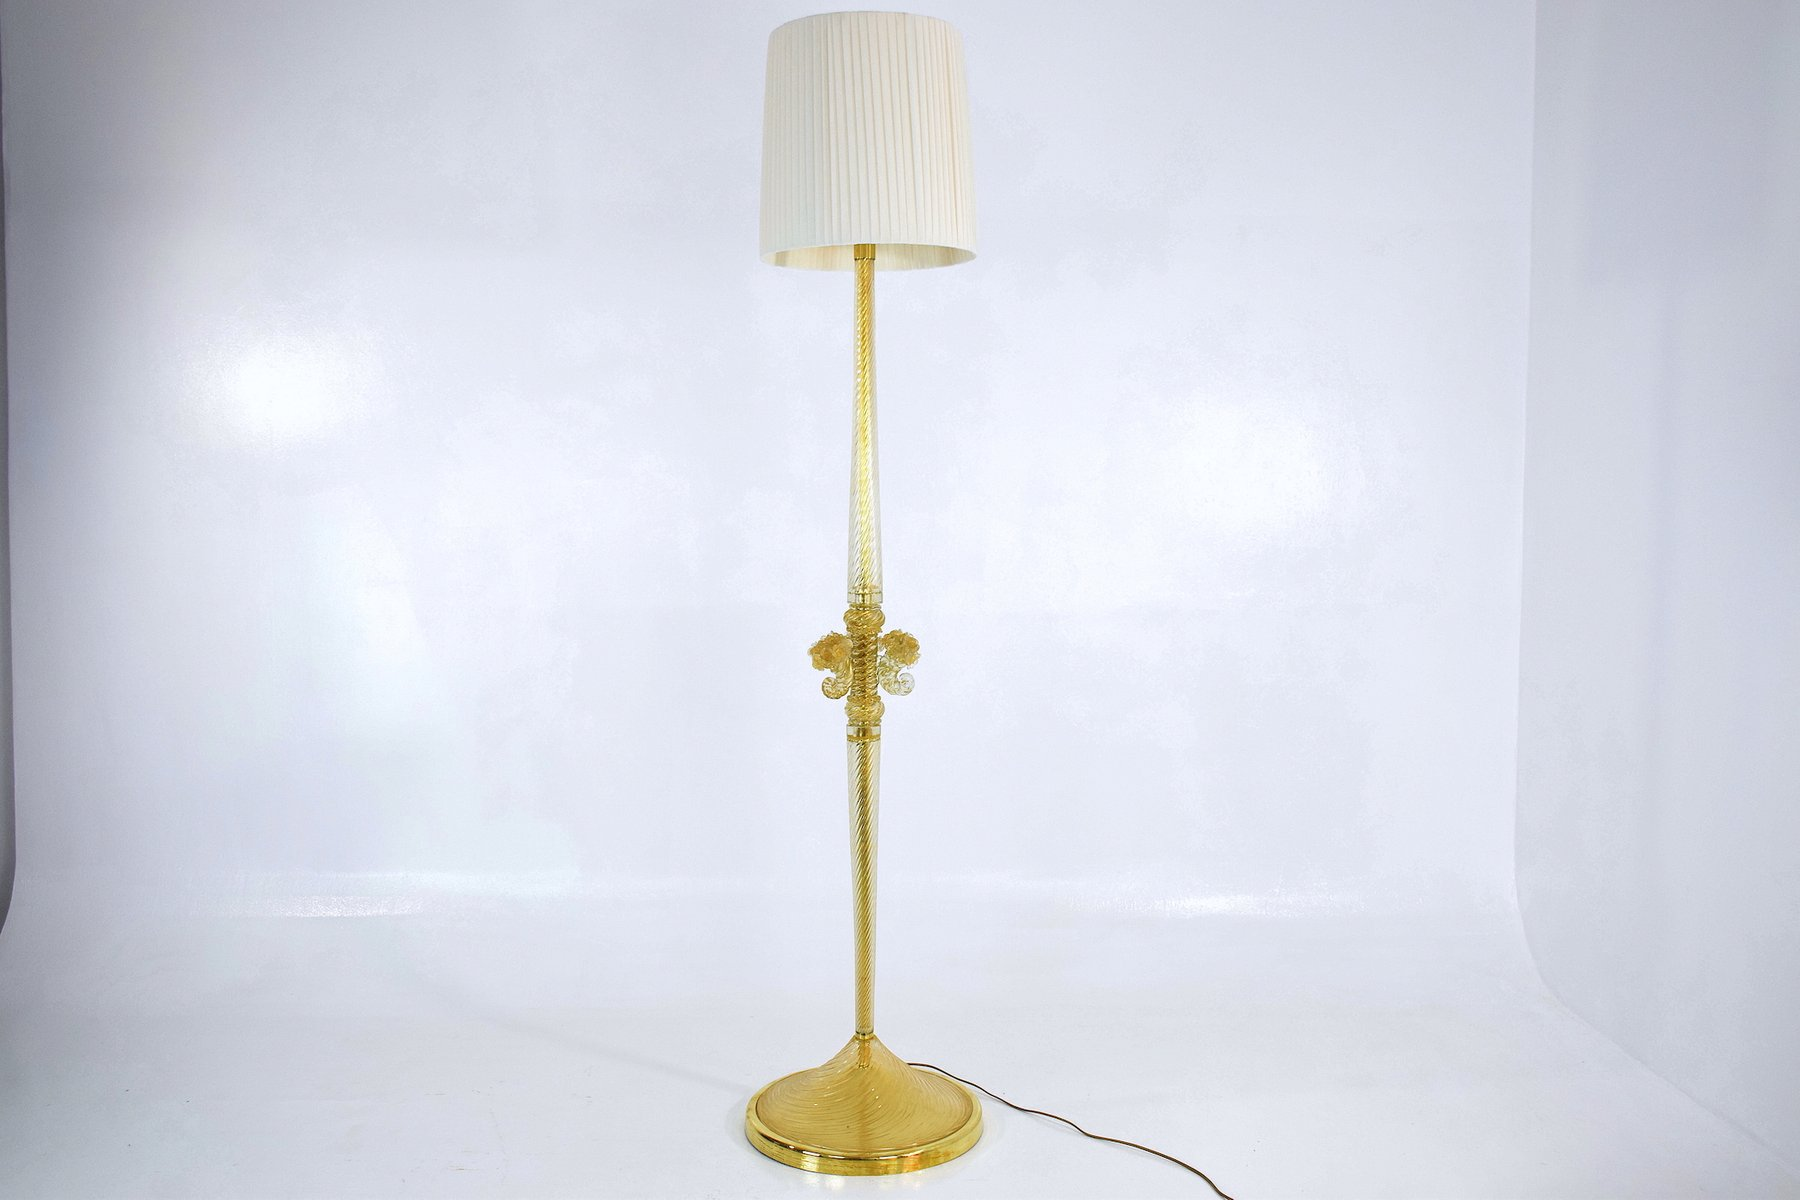 Mid century murano floor lamp by ercole barovier for barovier mid century murano floor lamp by ercole barovier for barovier toso 1940s for sale at pamono mozeypictures Images